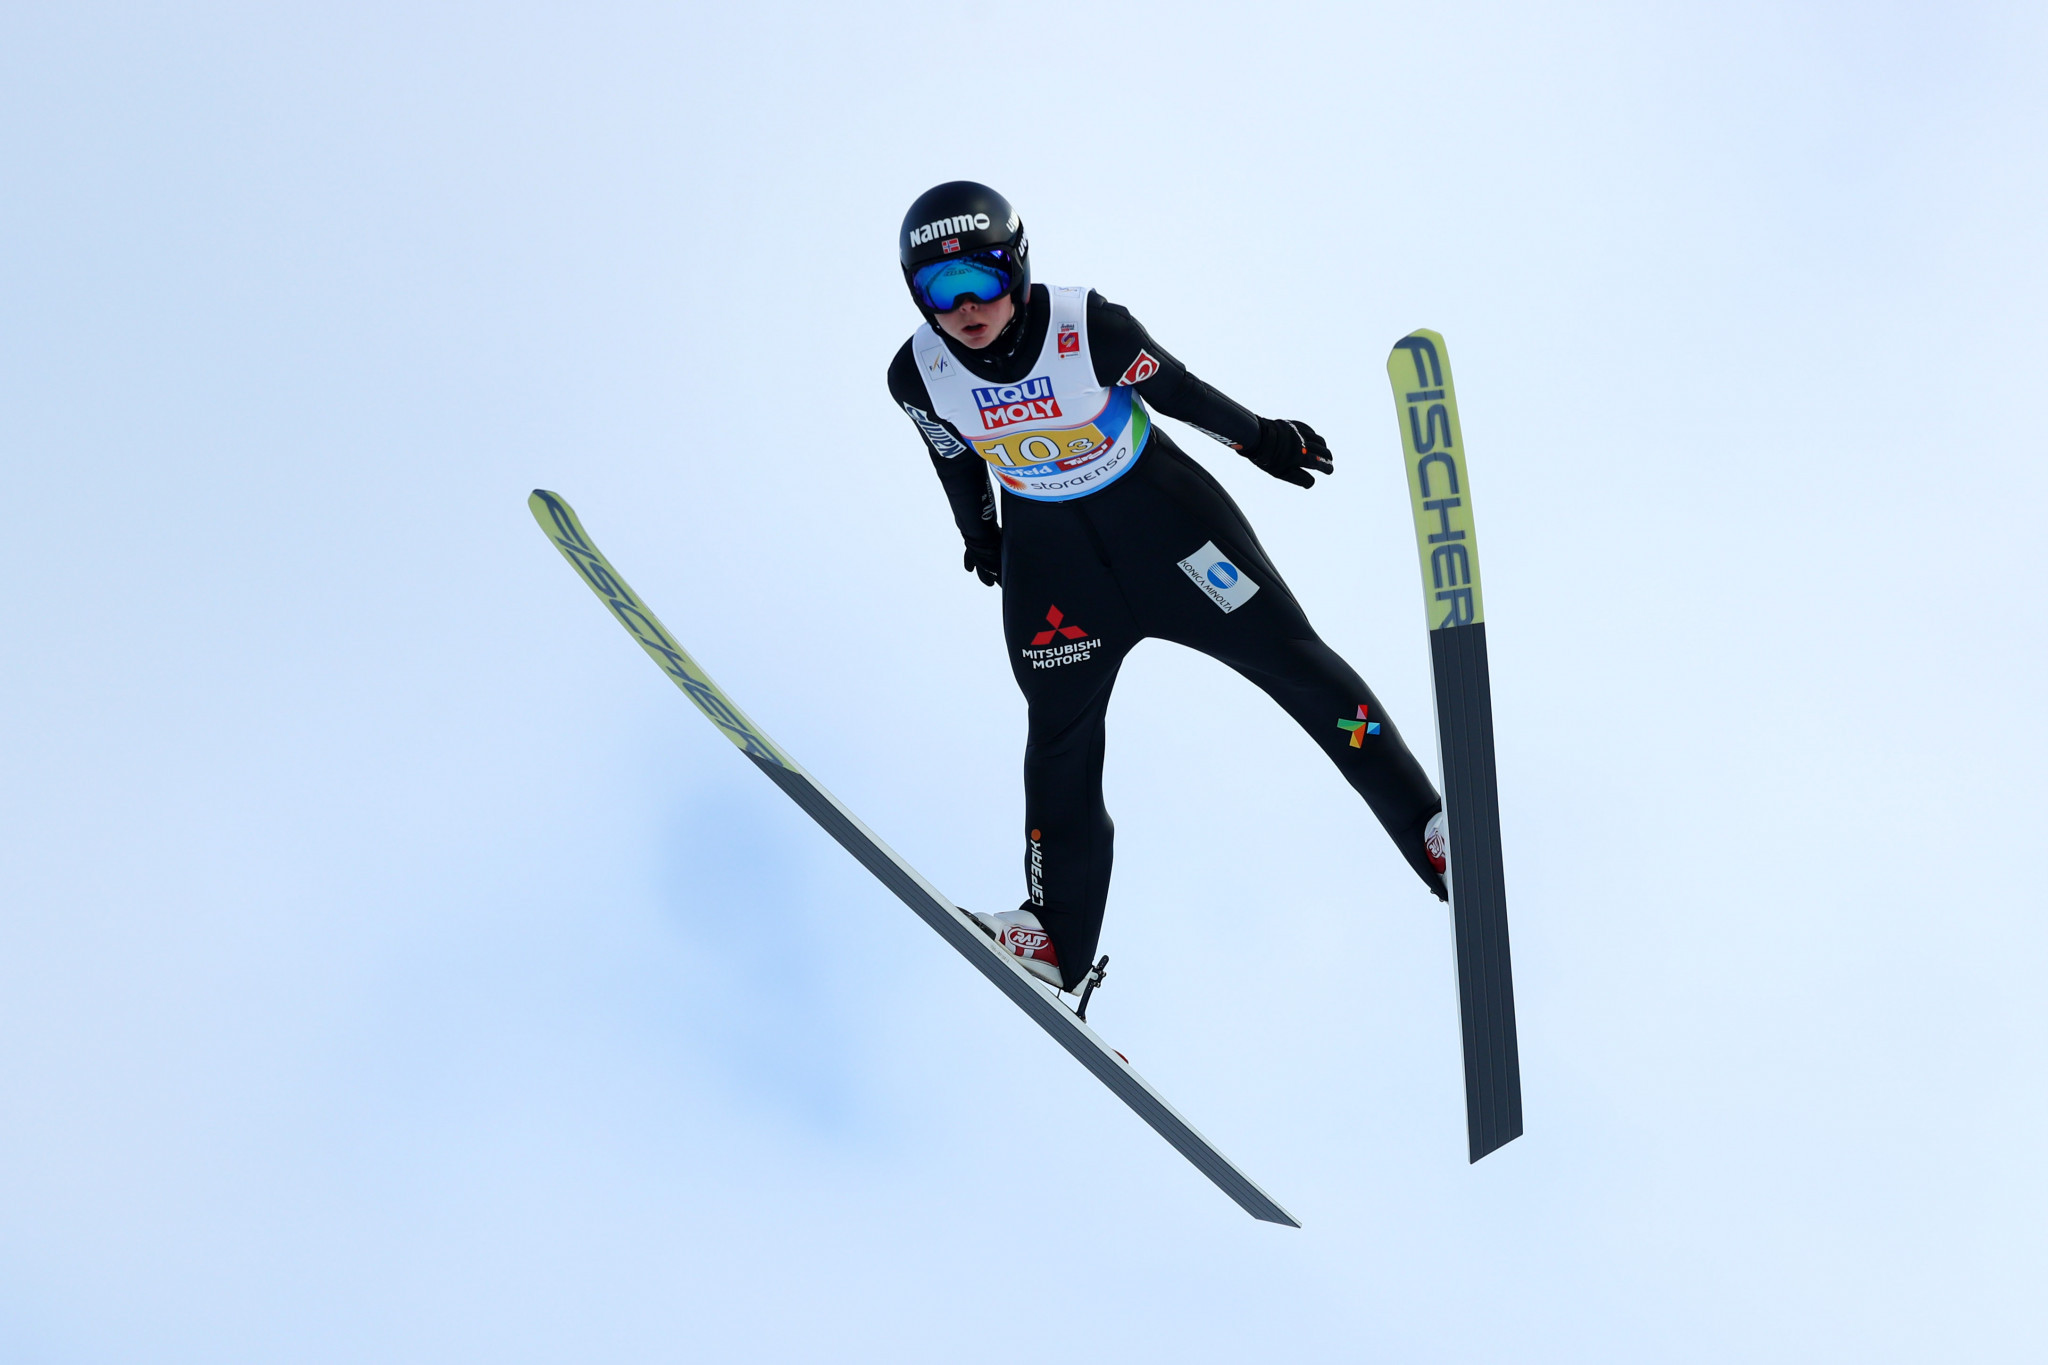 Norway's Maren Lundby led qualification at the women's FIS Ski Jumping World Cup in Chaikovsky in Russia ©Getty Images